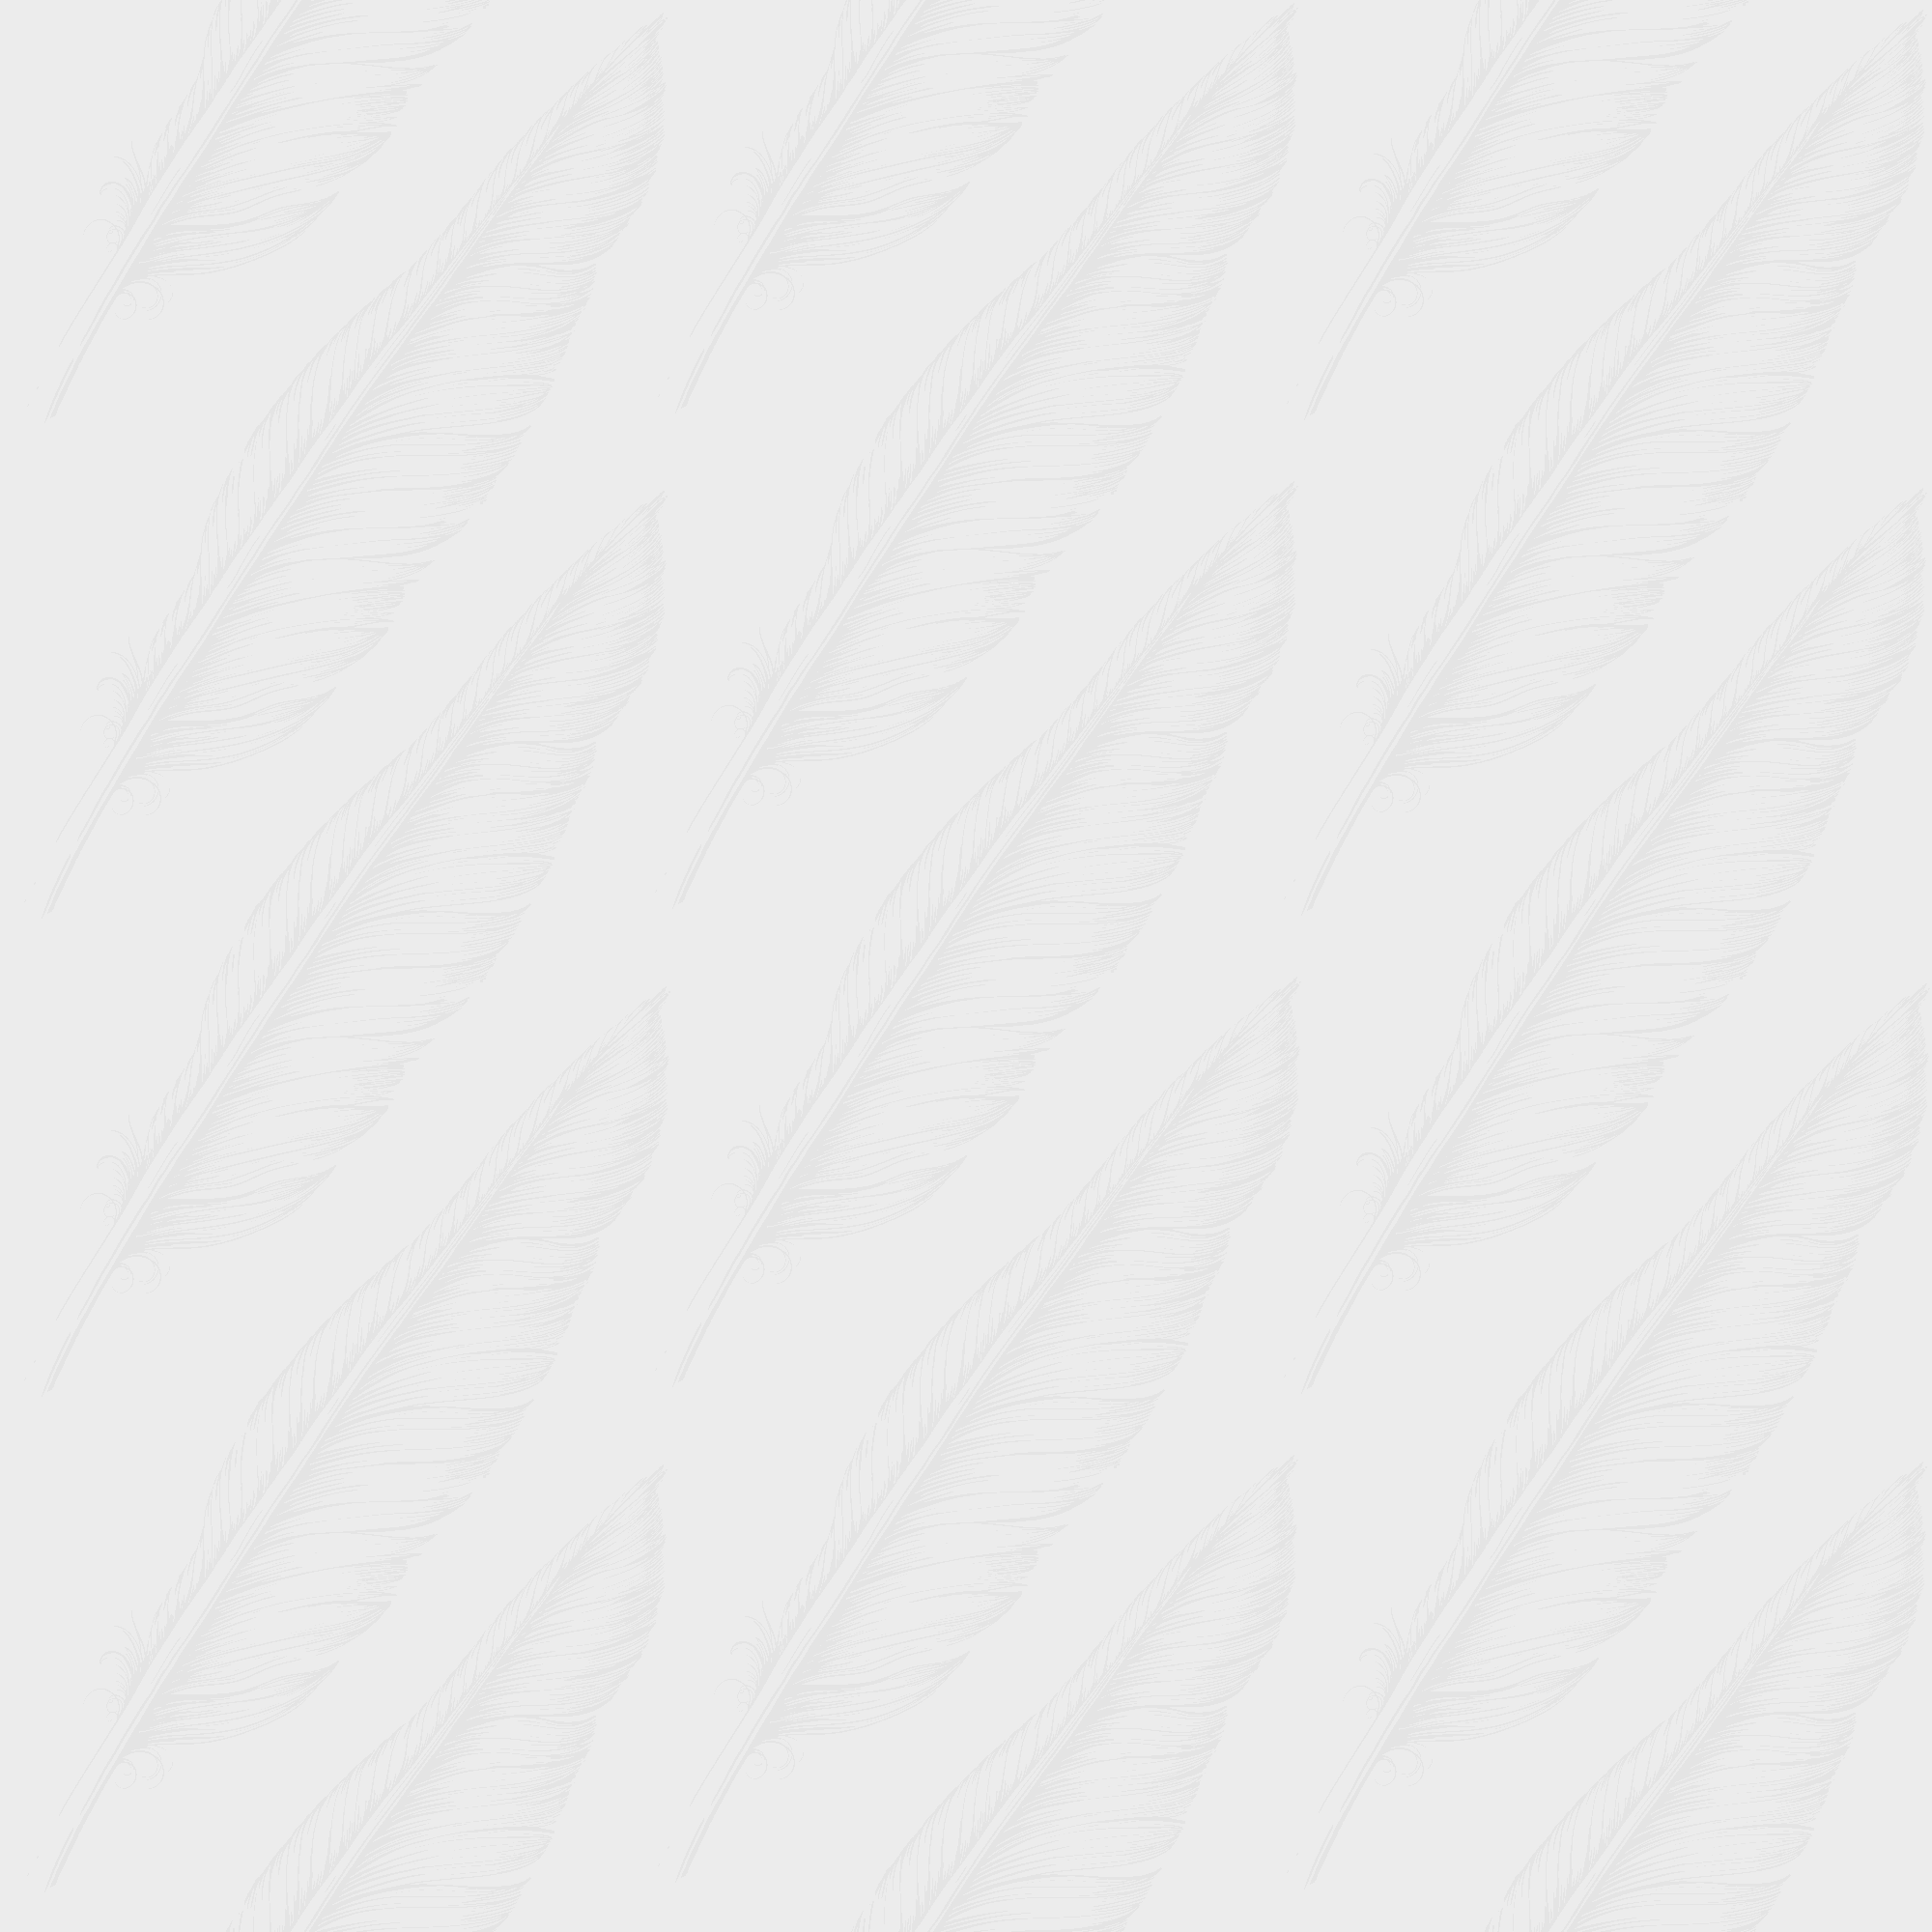 quill-background.png